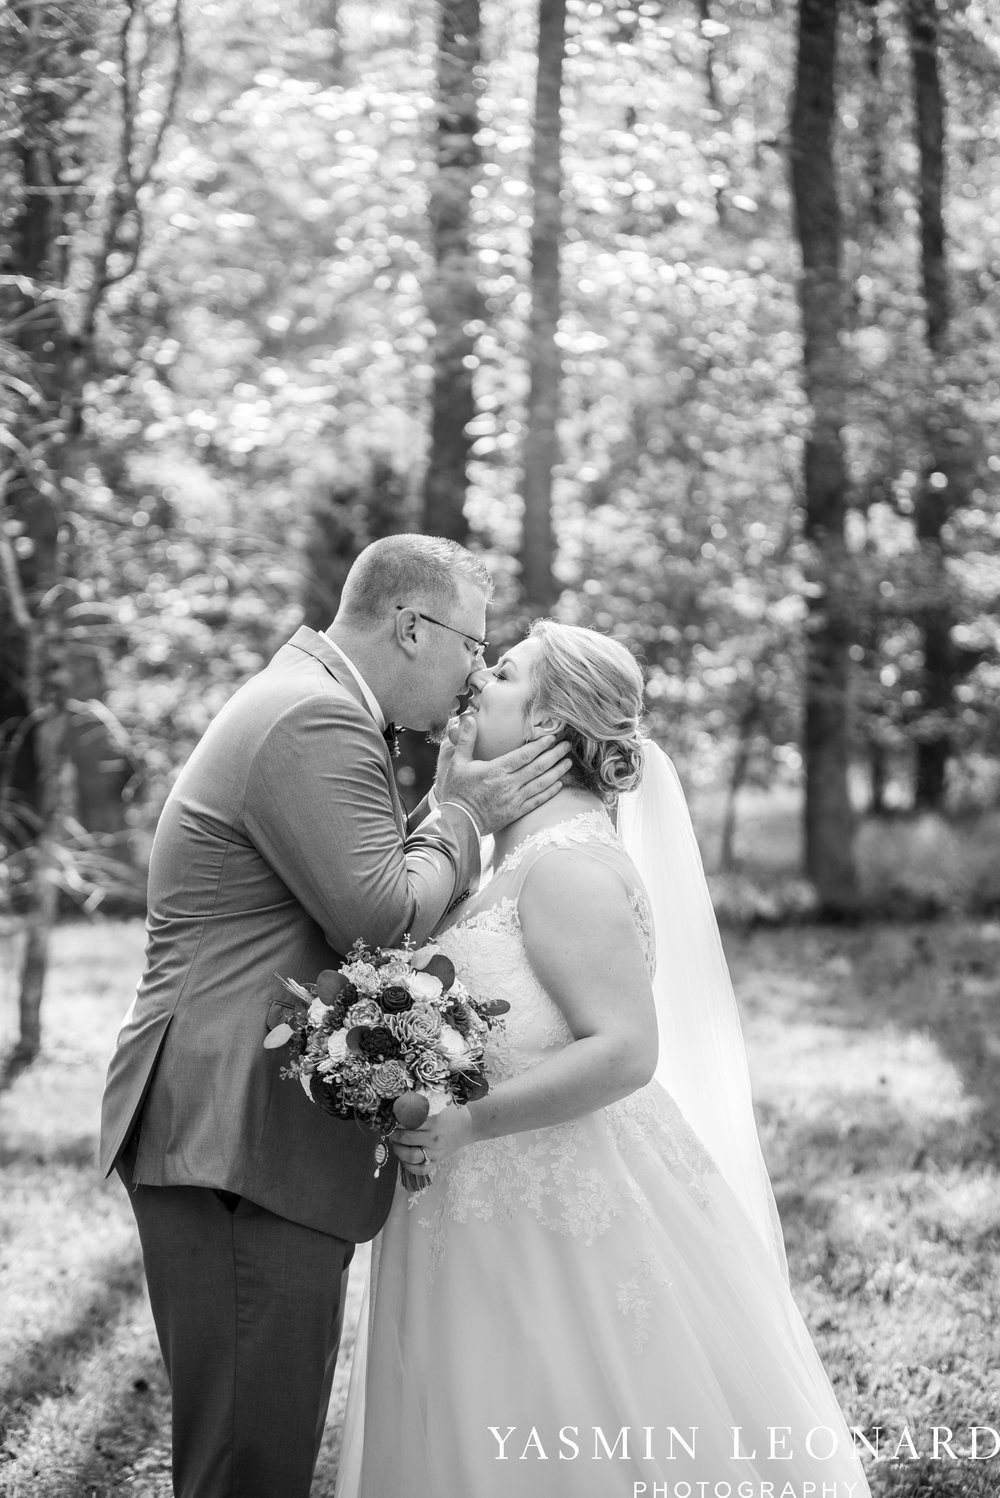 Danner Farms - NC Wedding Venues - NC Barns - Statesville NC - NC Wedding Photographer - High Point Wedding Photographer - Yasmin Leonard Photography-14.jpg